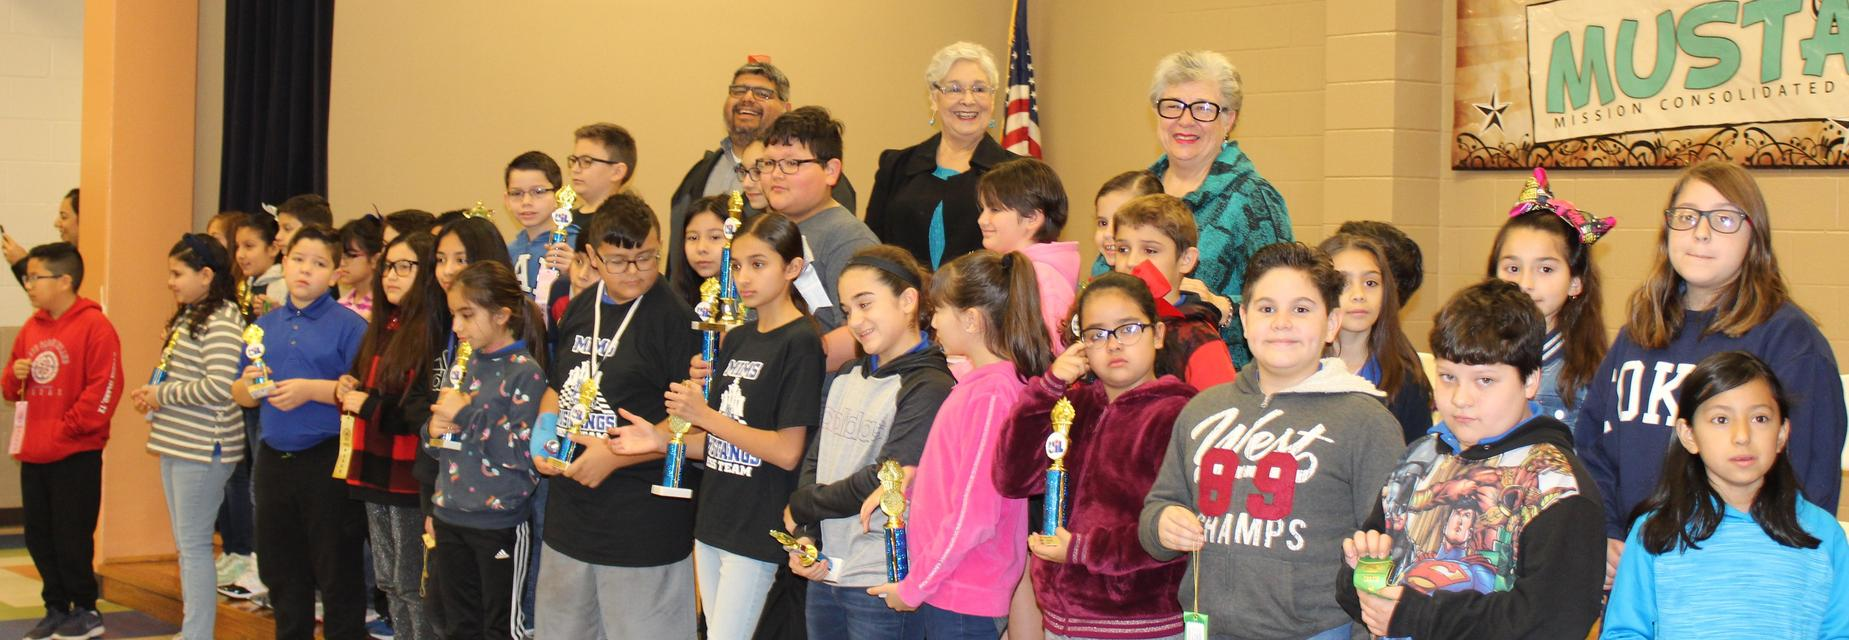 students with trophies and school board members